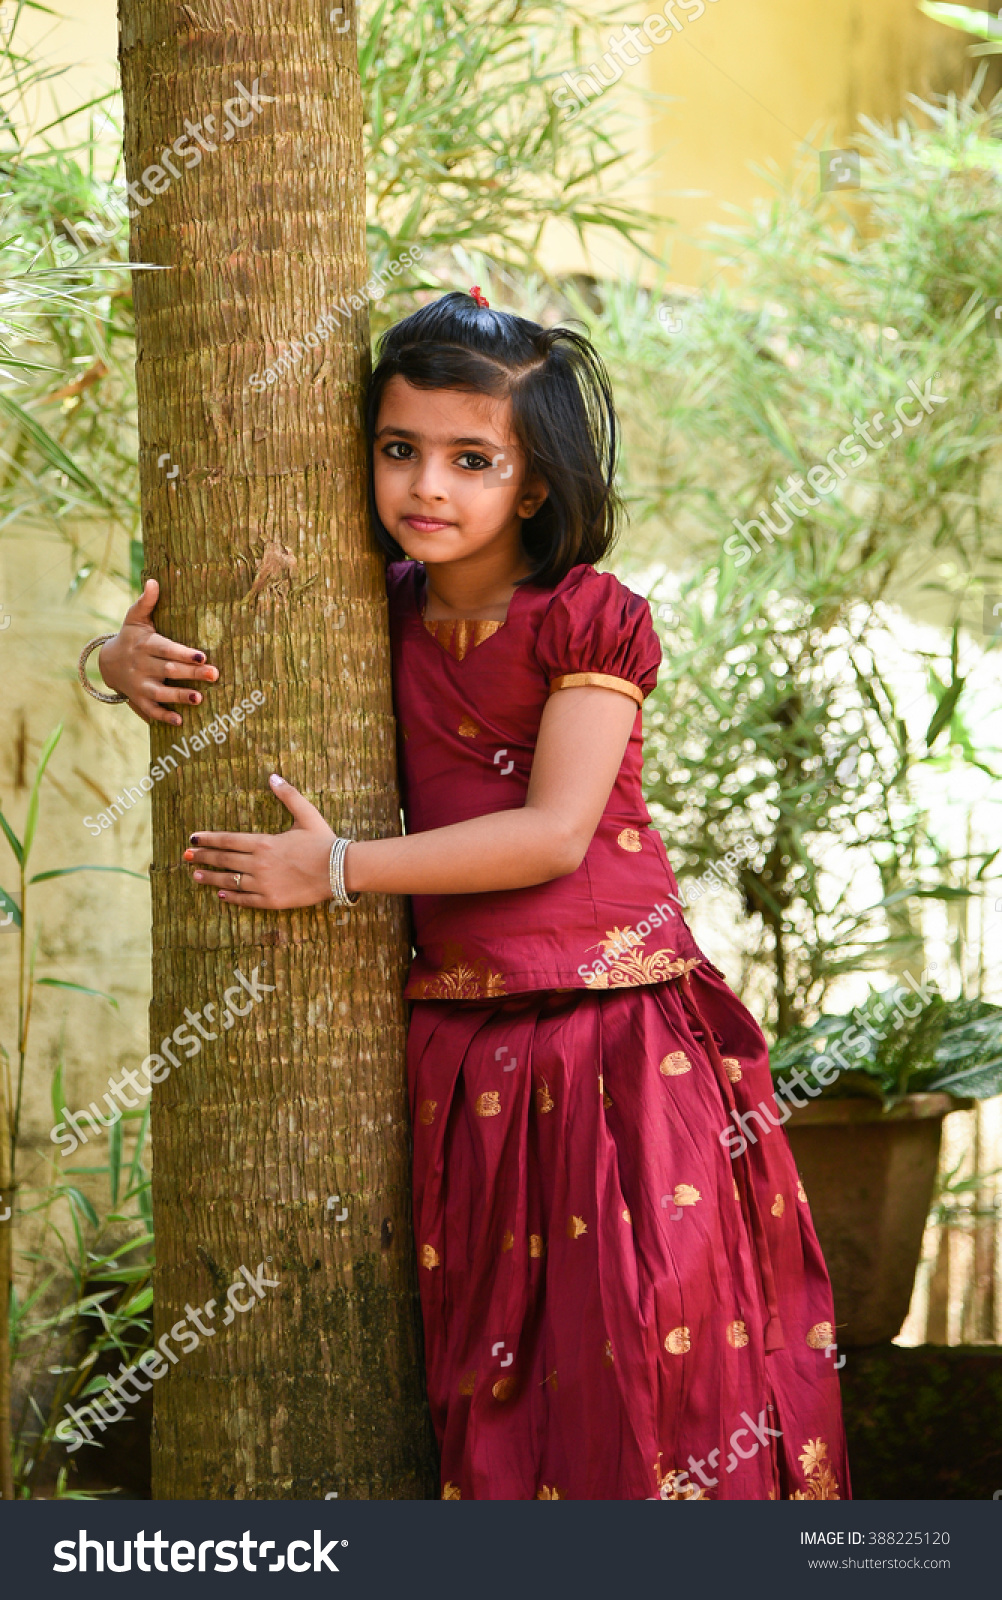 9bfa629e097a Royalty-free Young Indian girl kids wearing…  388225120 Stock Photo ...